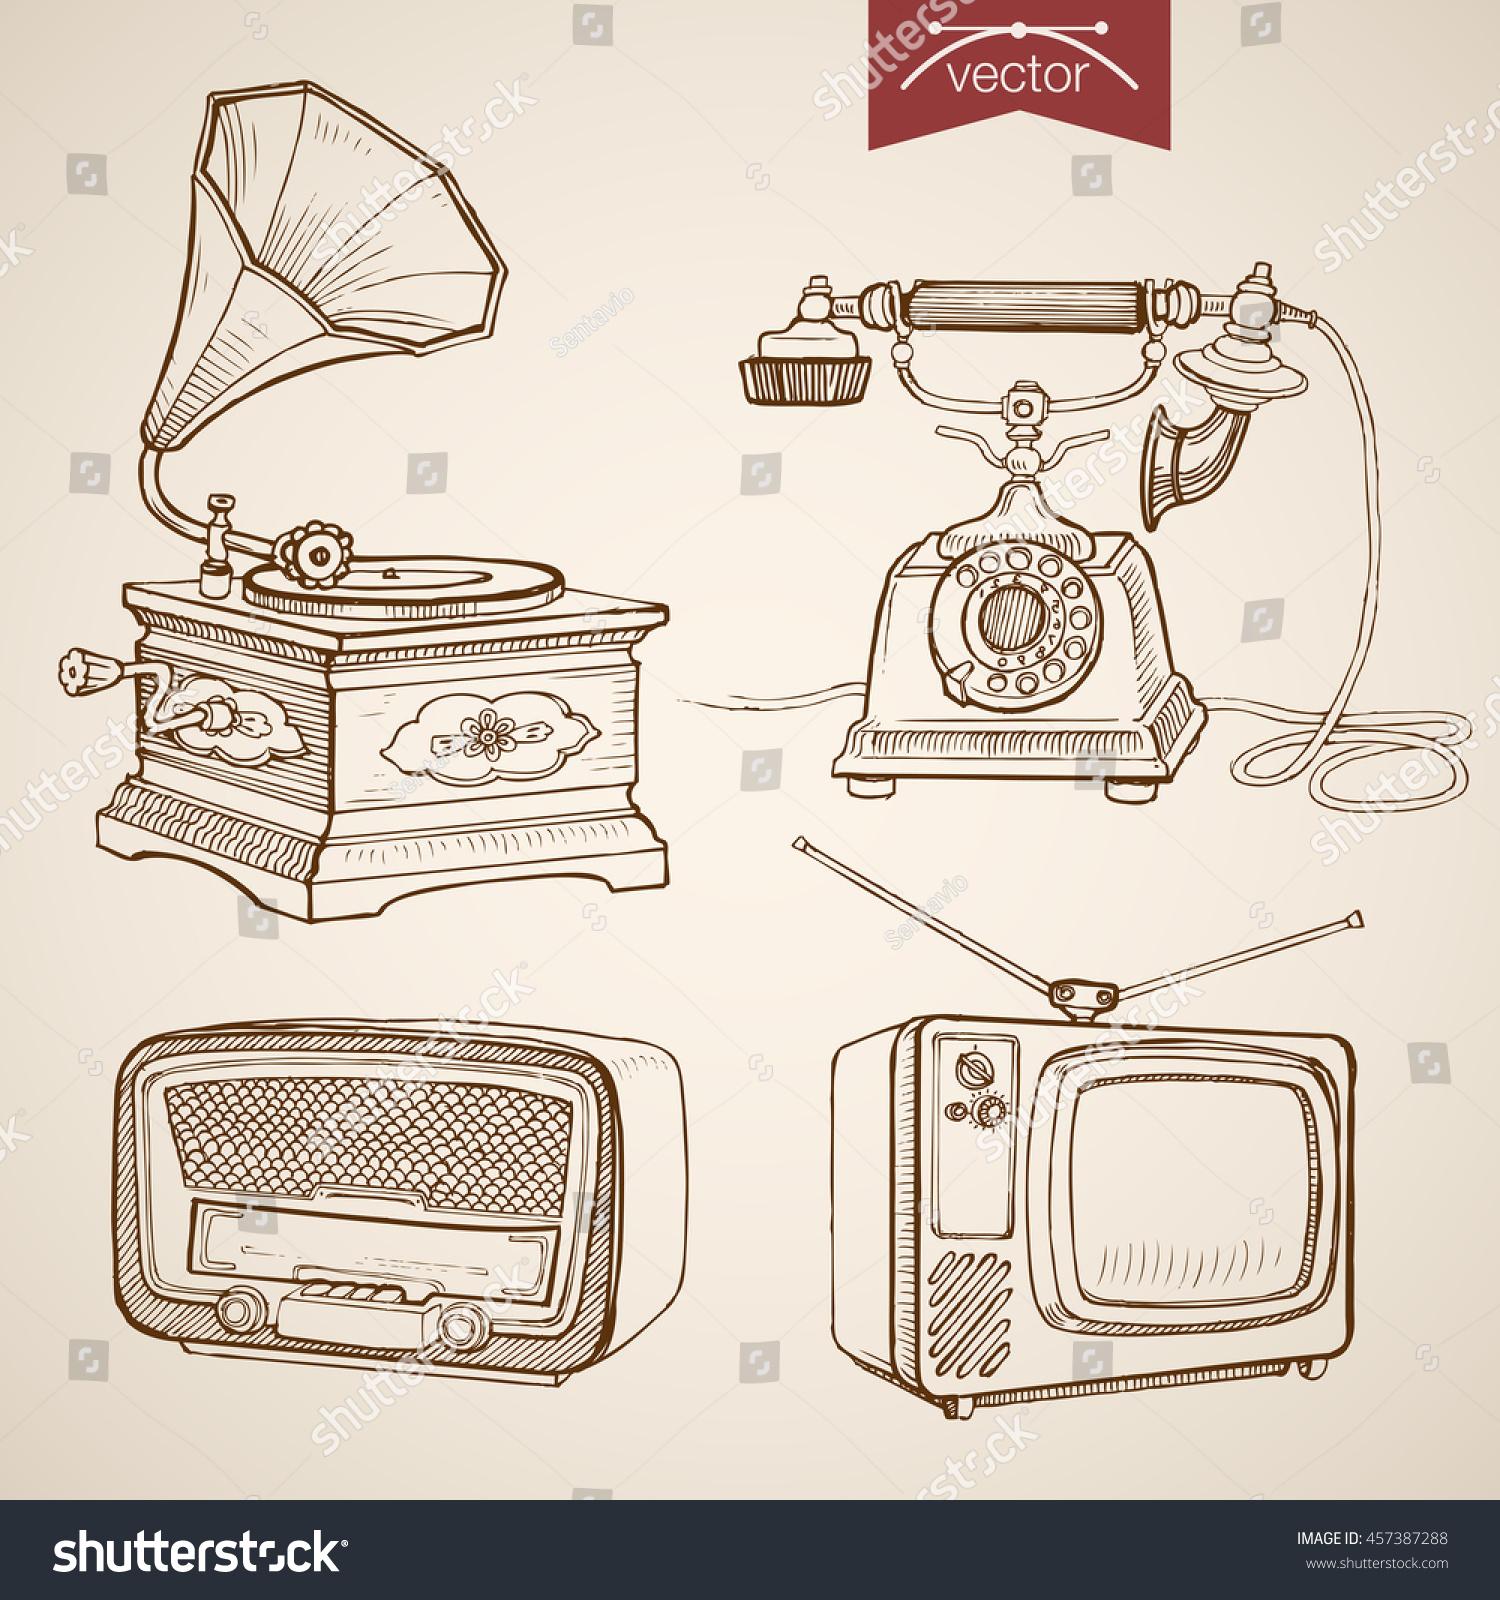 Engraving vintage hand drawn vector video music and sound retro equipment collection pencil sketch phone